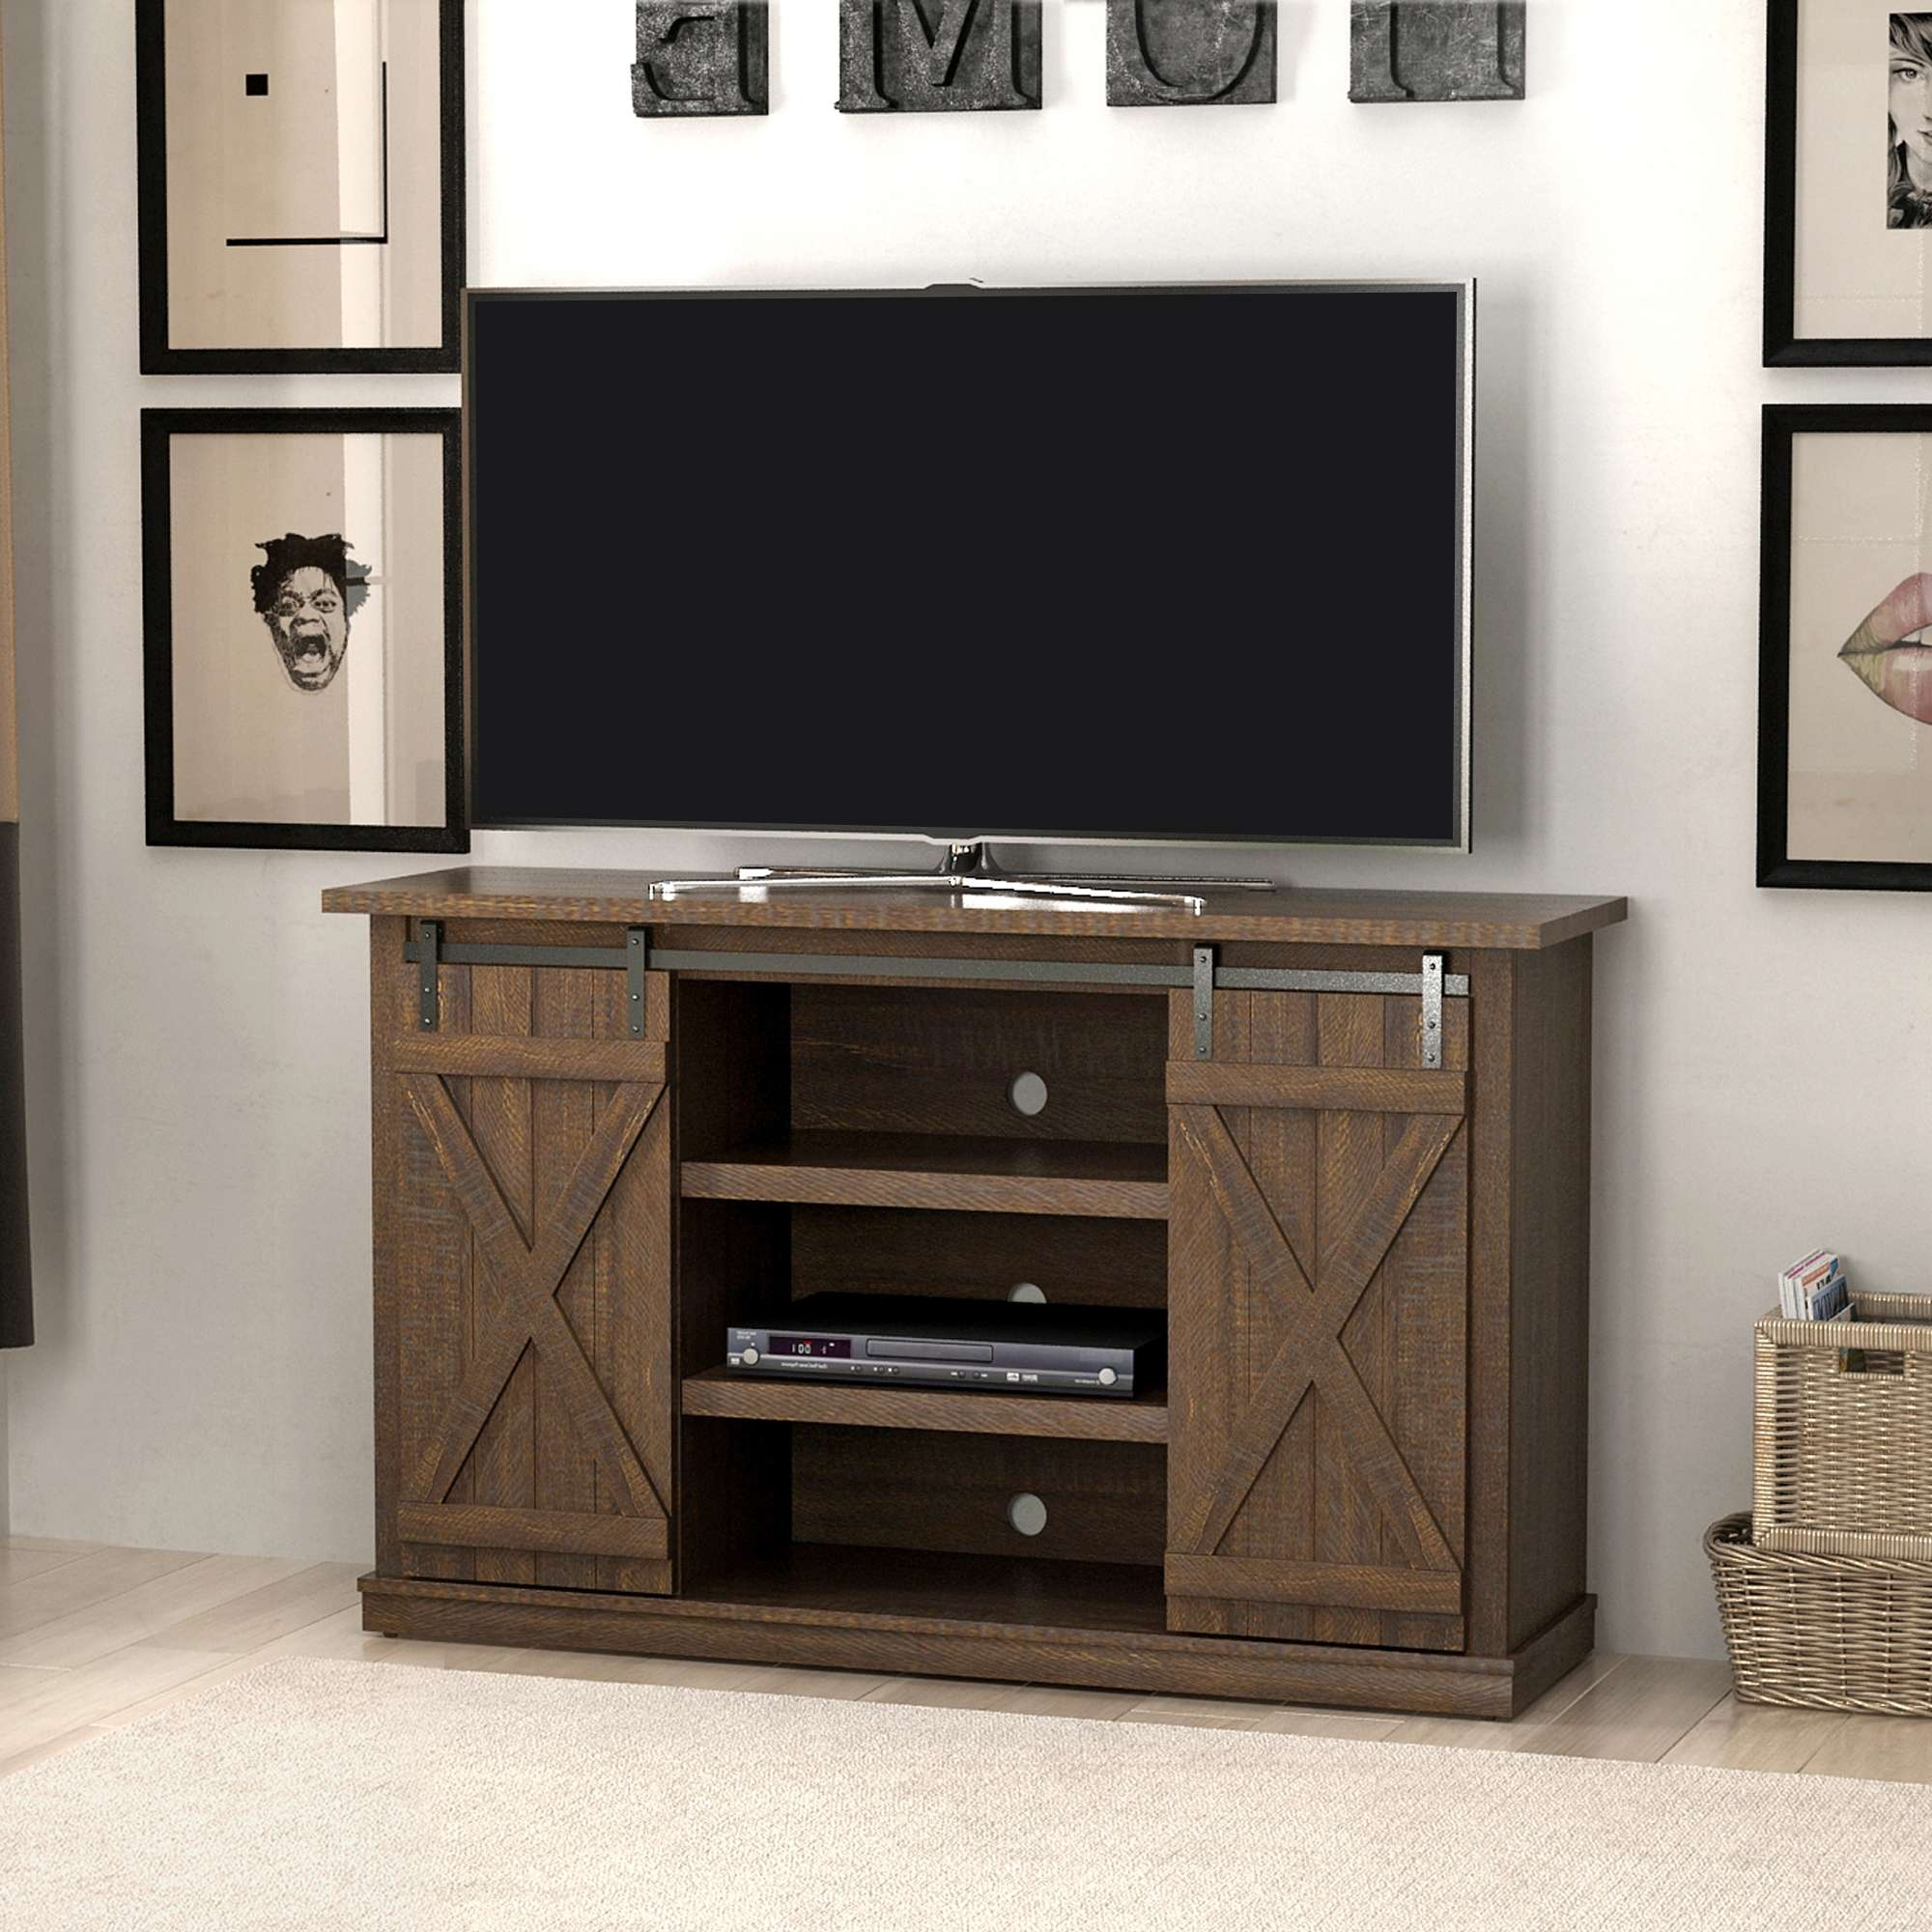 Tv Stands – Walmart Regarding Skinny Tv Stands (View 12 of 15)